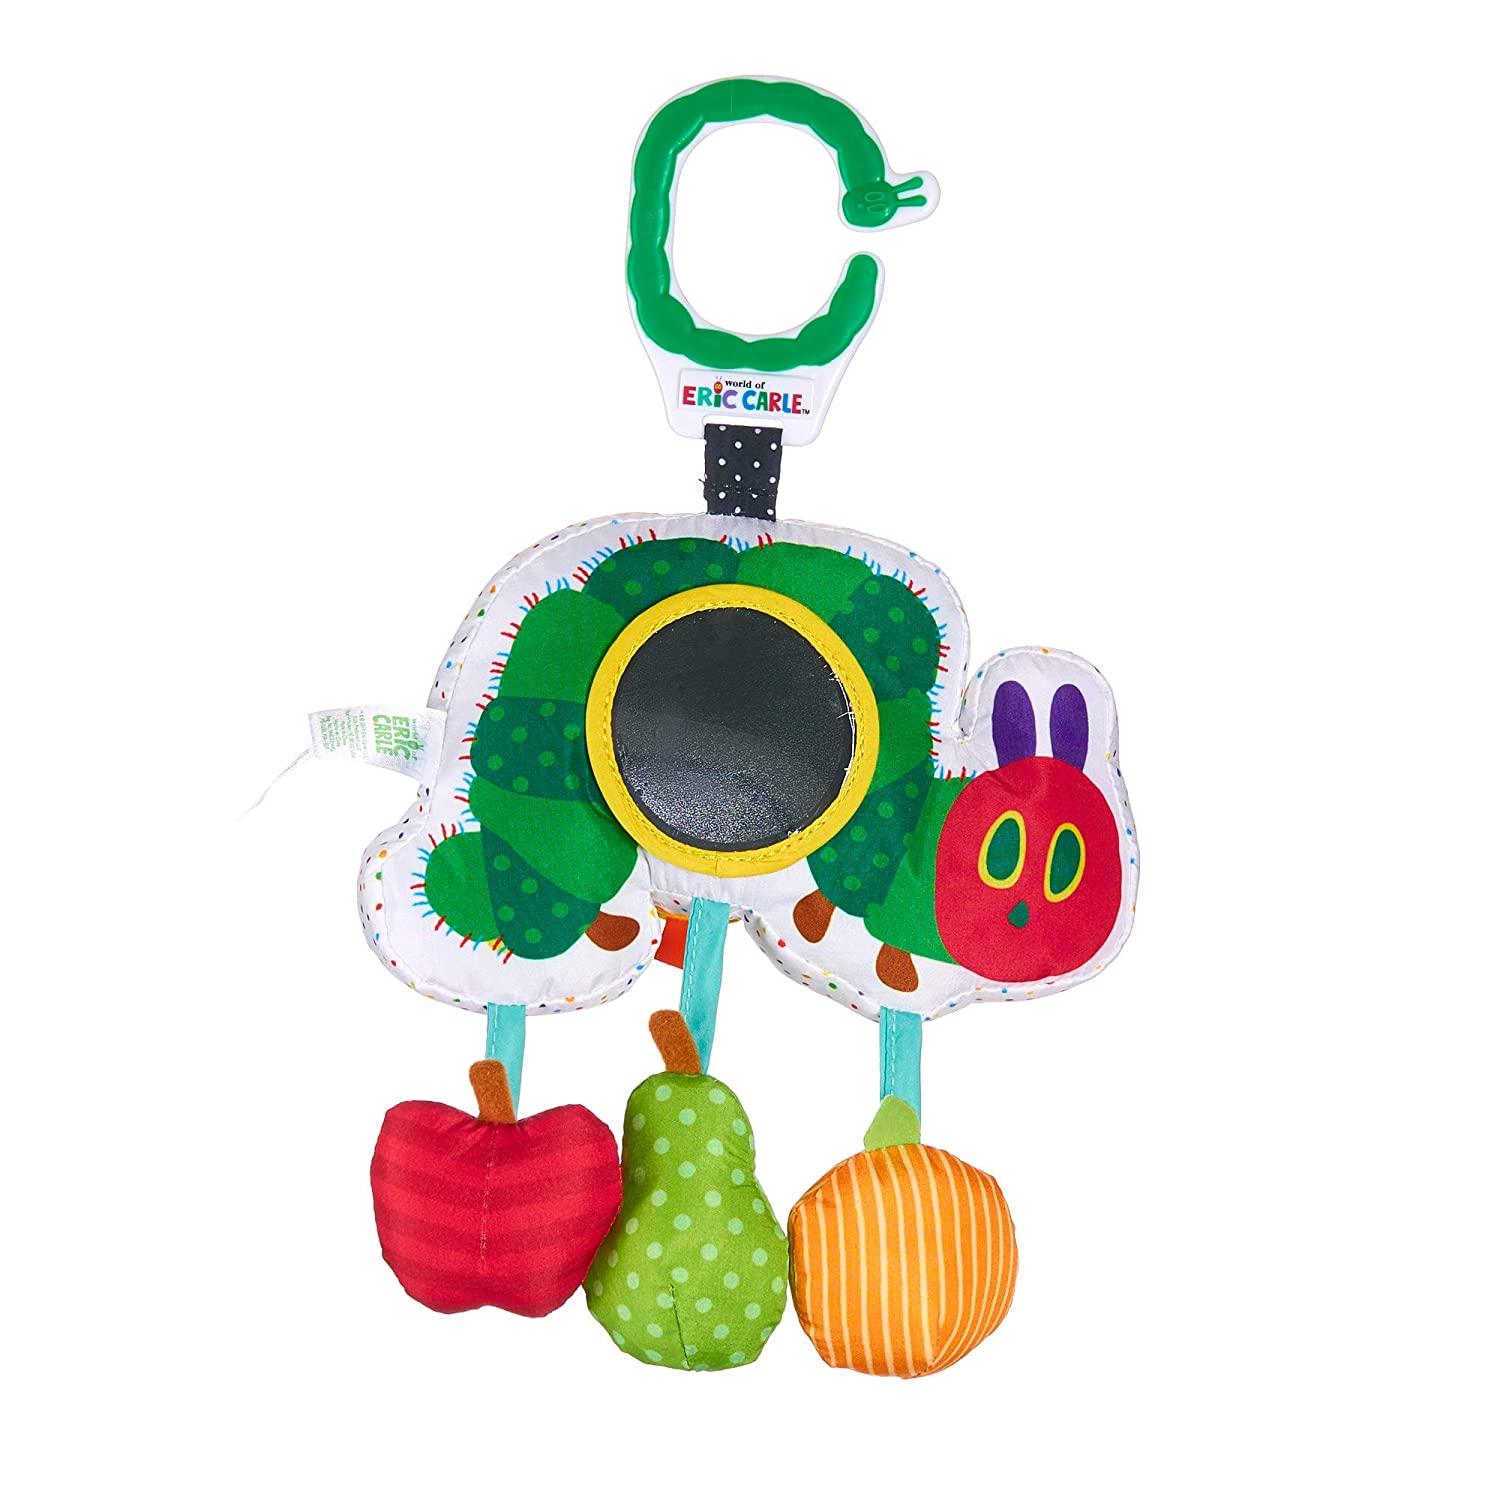 KIDS PREFERRED World of Eric Carle, The Very Hungry Caterpillar Activity Toy